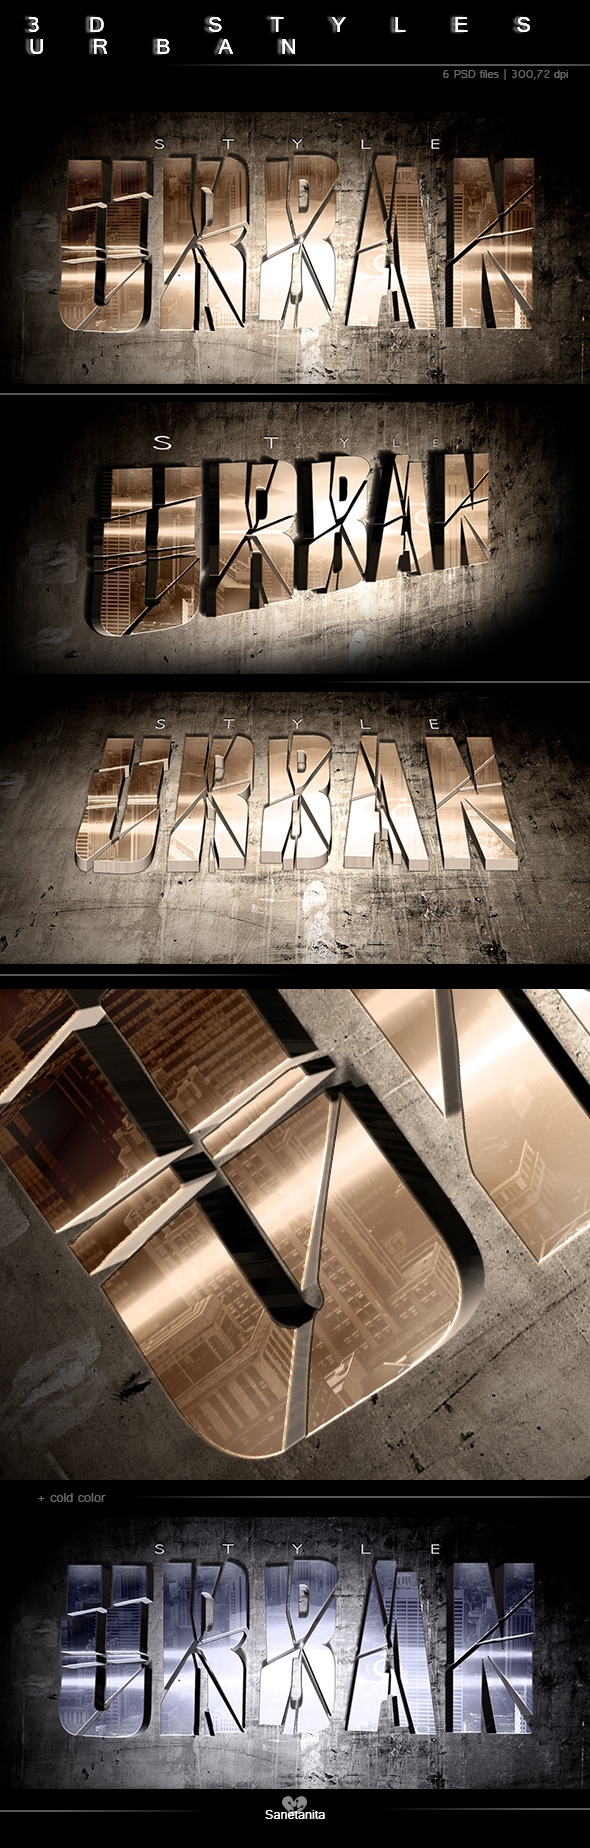 3D Urban Style - Text Effects Styles